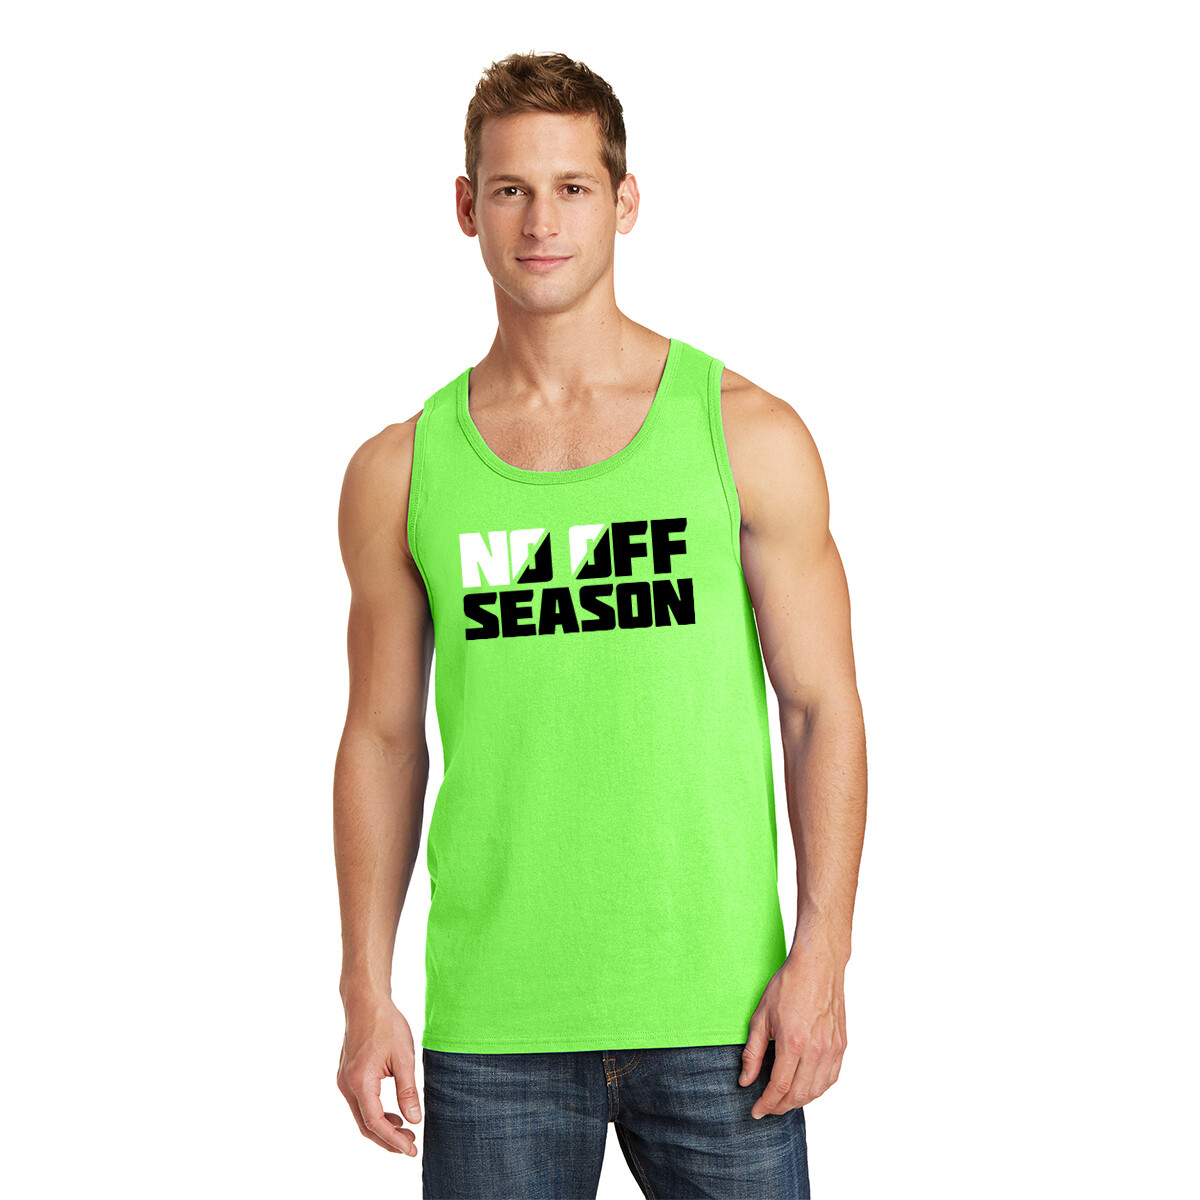 NO OFF SEASON TANK TOP - Neon Green - Adult Sizing